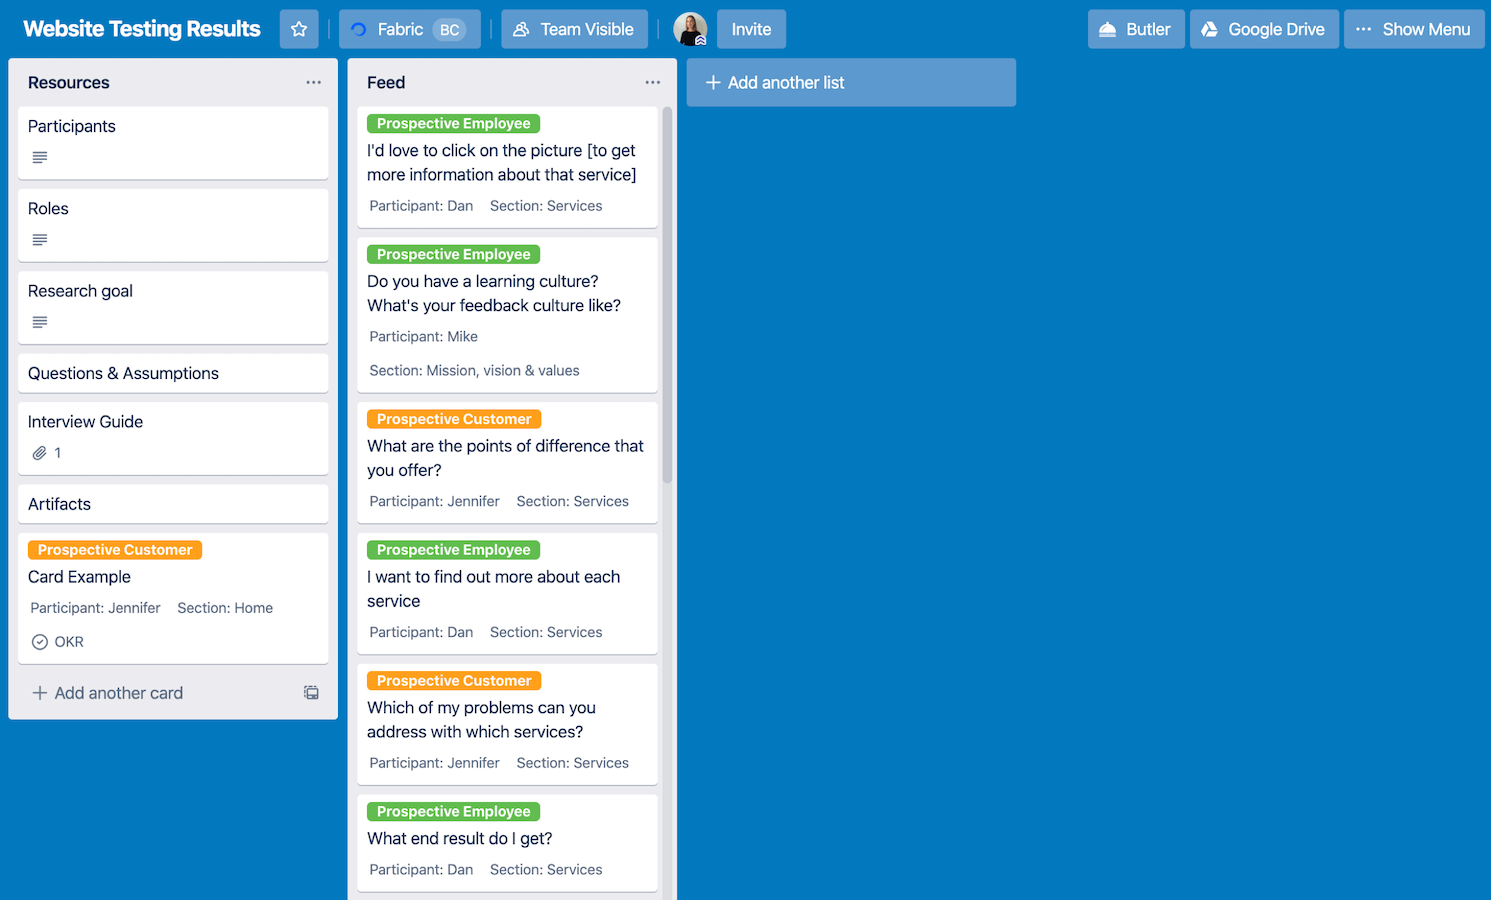 Trello board populated with some insights